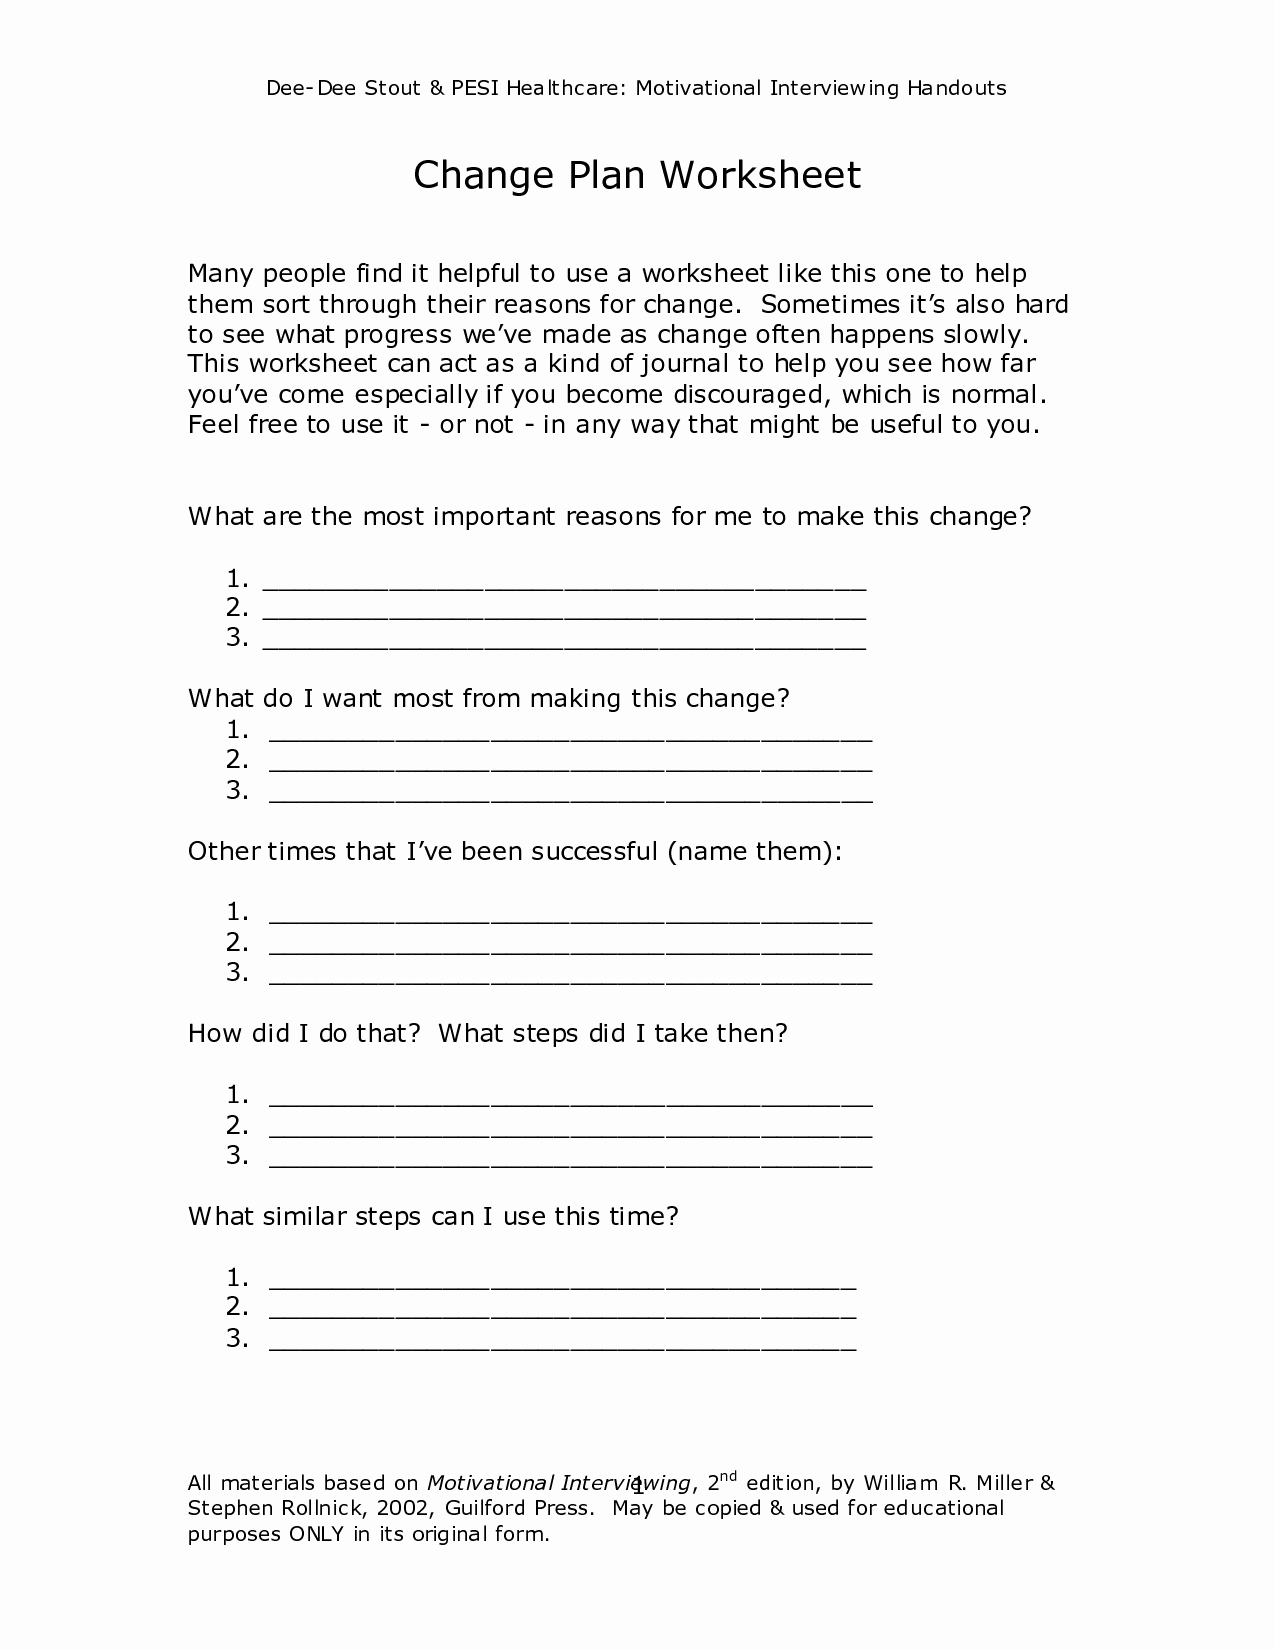 Stages Of Change Worksheet Awesome 16 Best Of Motivational Worksheets for Change